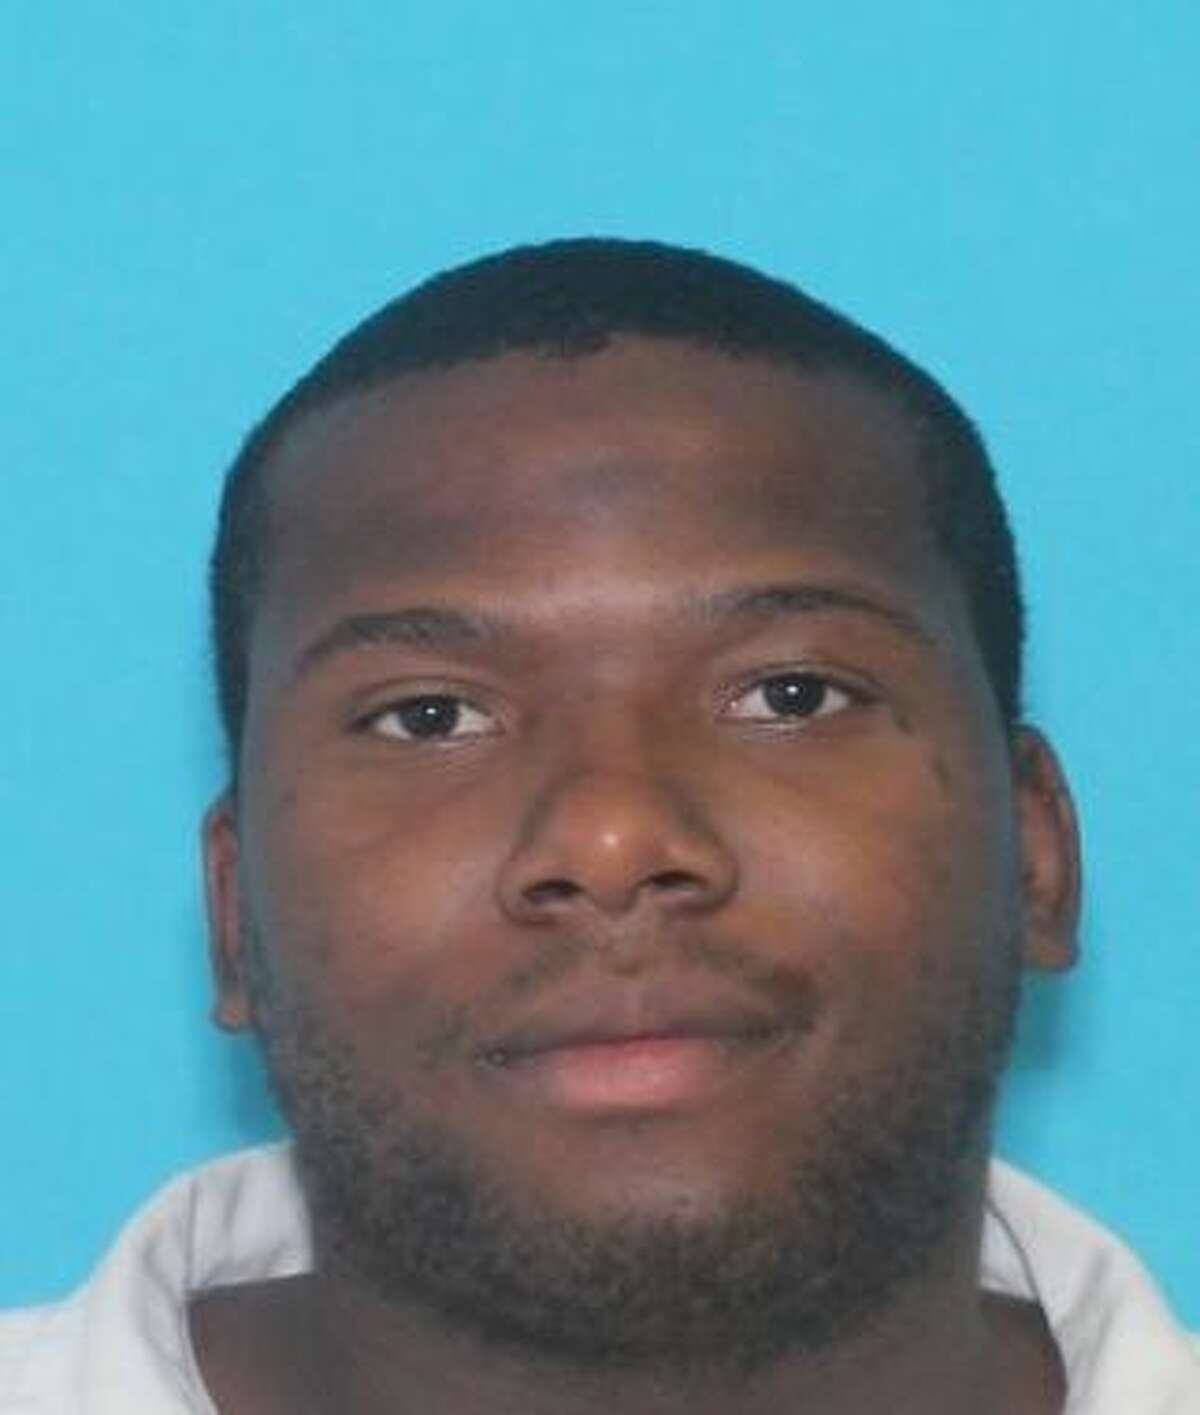 Edward Dawayne Manning of New Caney is wanted by the Montgomery County Sheriff's Office on a charge of family assault via strangulation. His warrant is active as of Nov. 1, Wednesday.